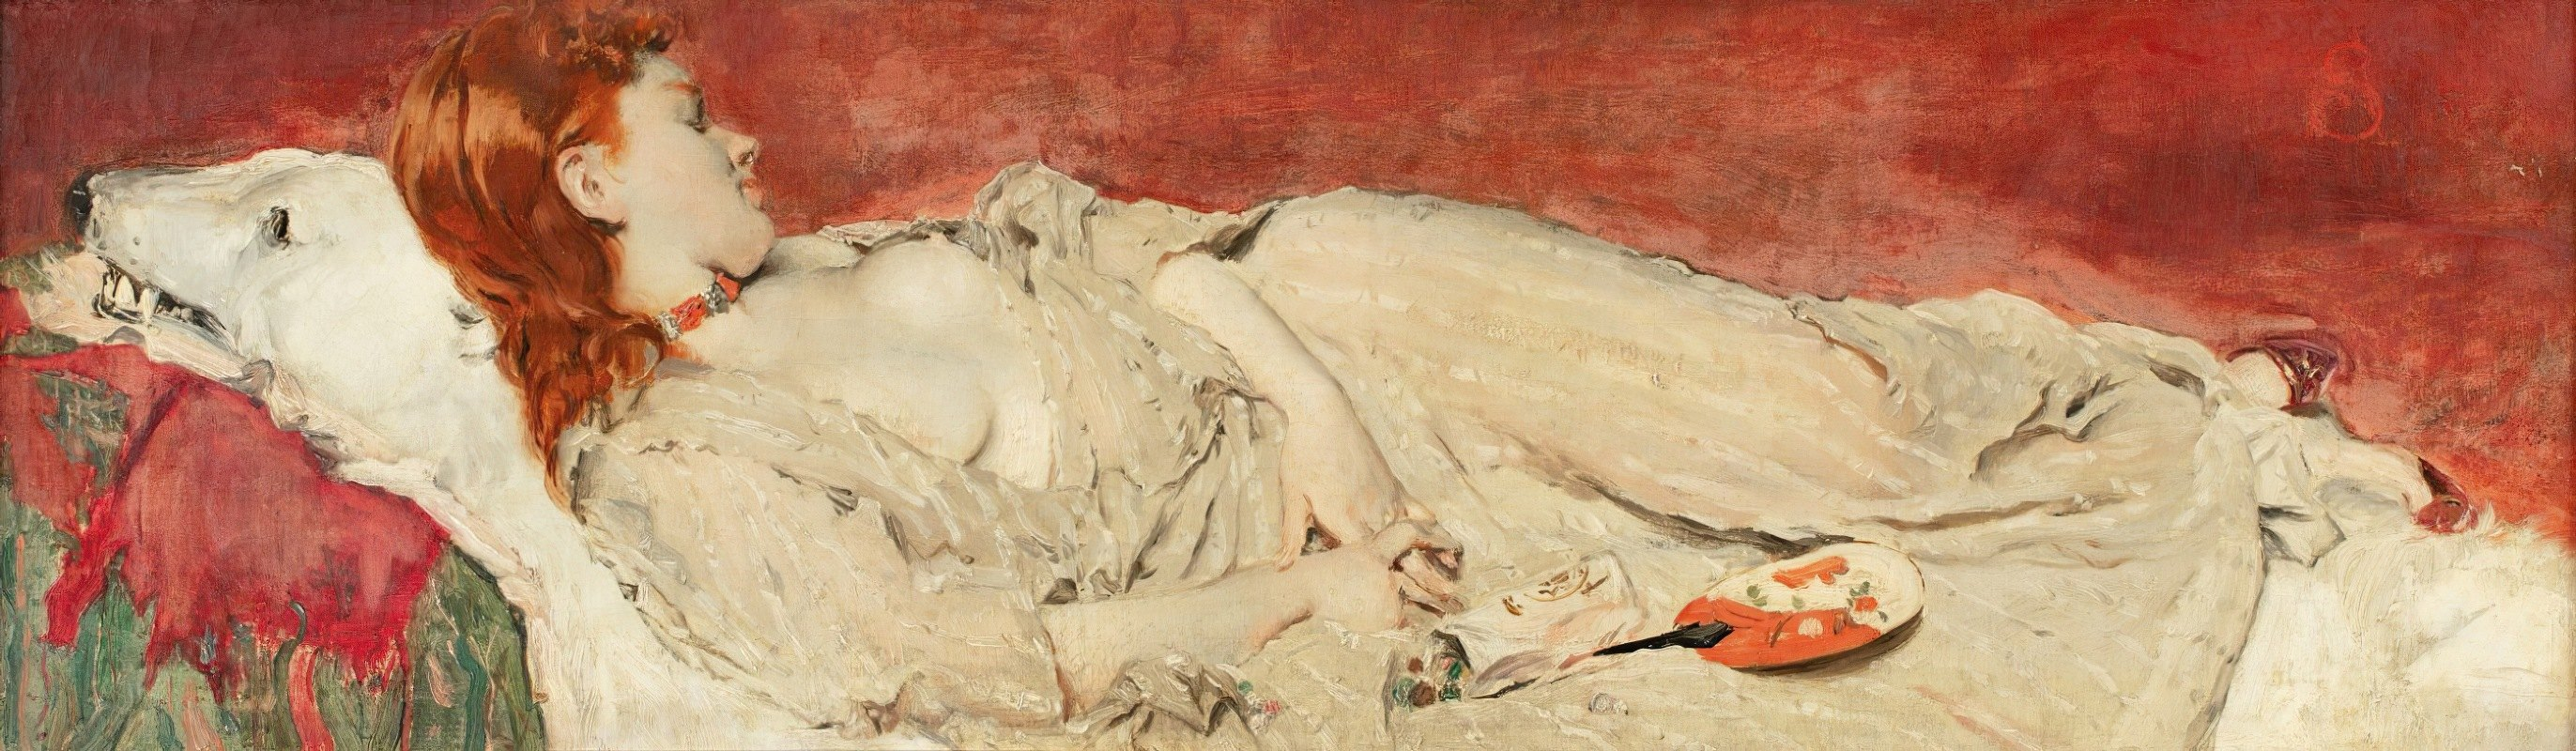 Alfred Stevens - A young red-hair girl sleeping on a bearskin